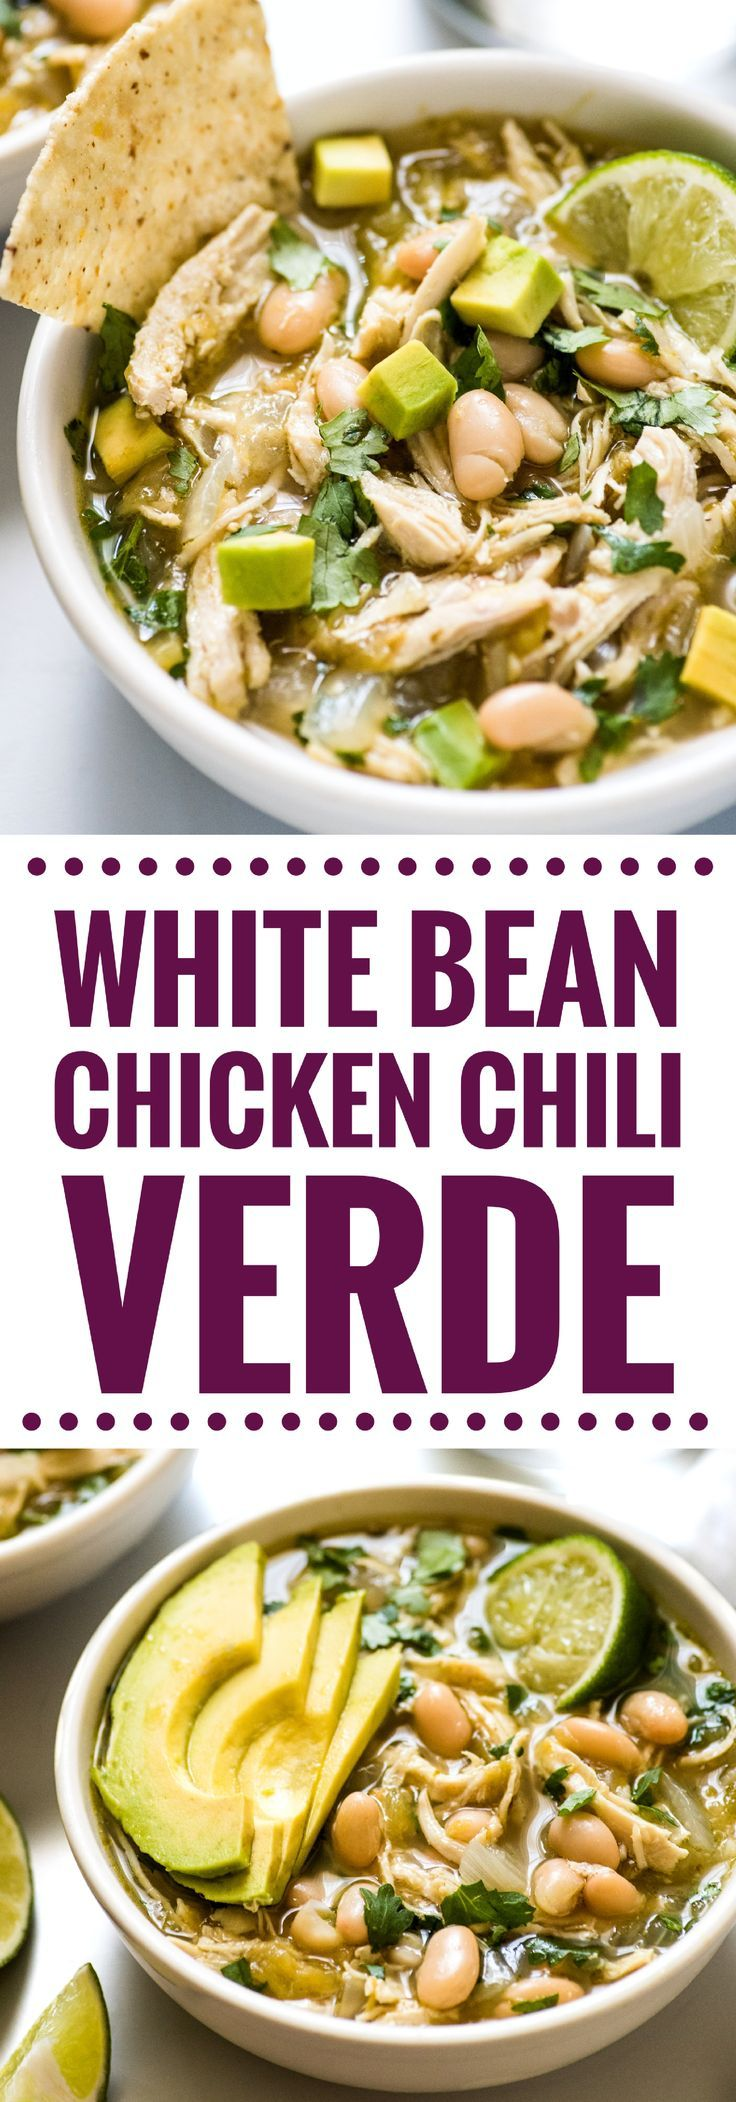 This hearty White Bean Chicken Chili Verde Soup is a comforting one pot meal made with salsa verde that's naturally gluten free for the whole family! (Favorite Food Meals)